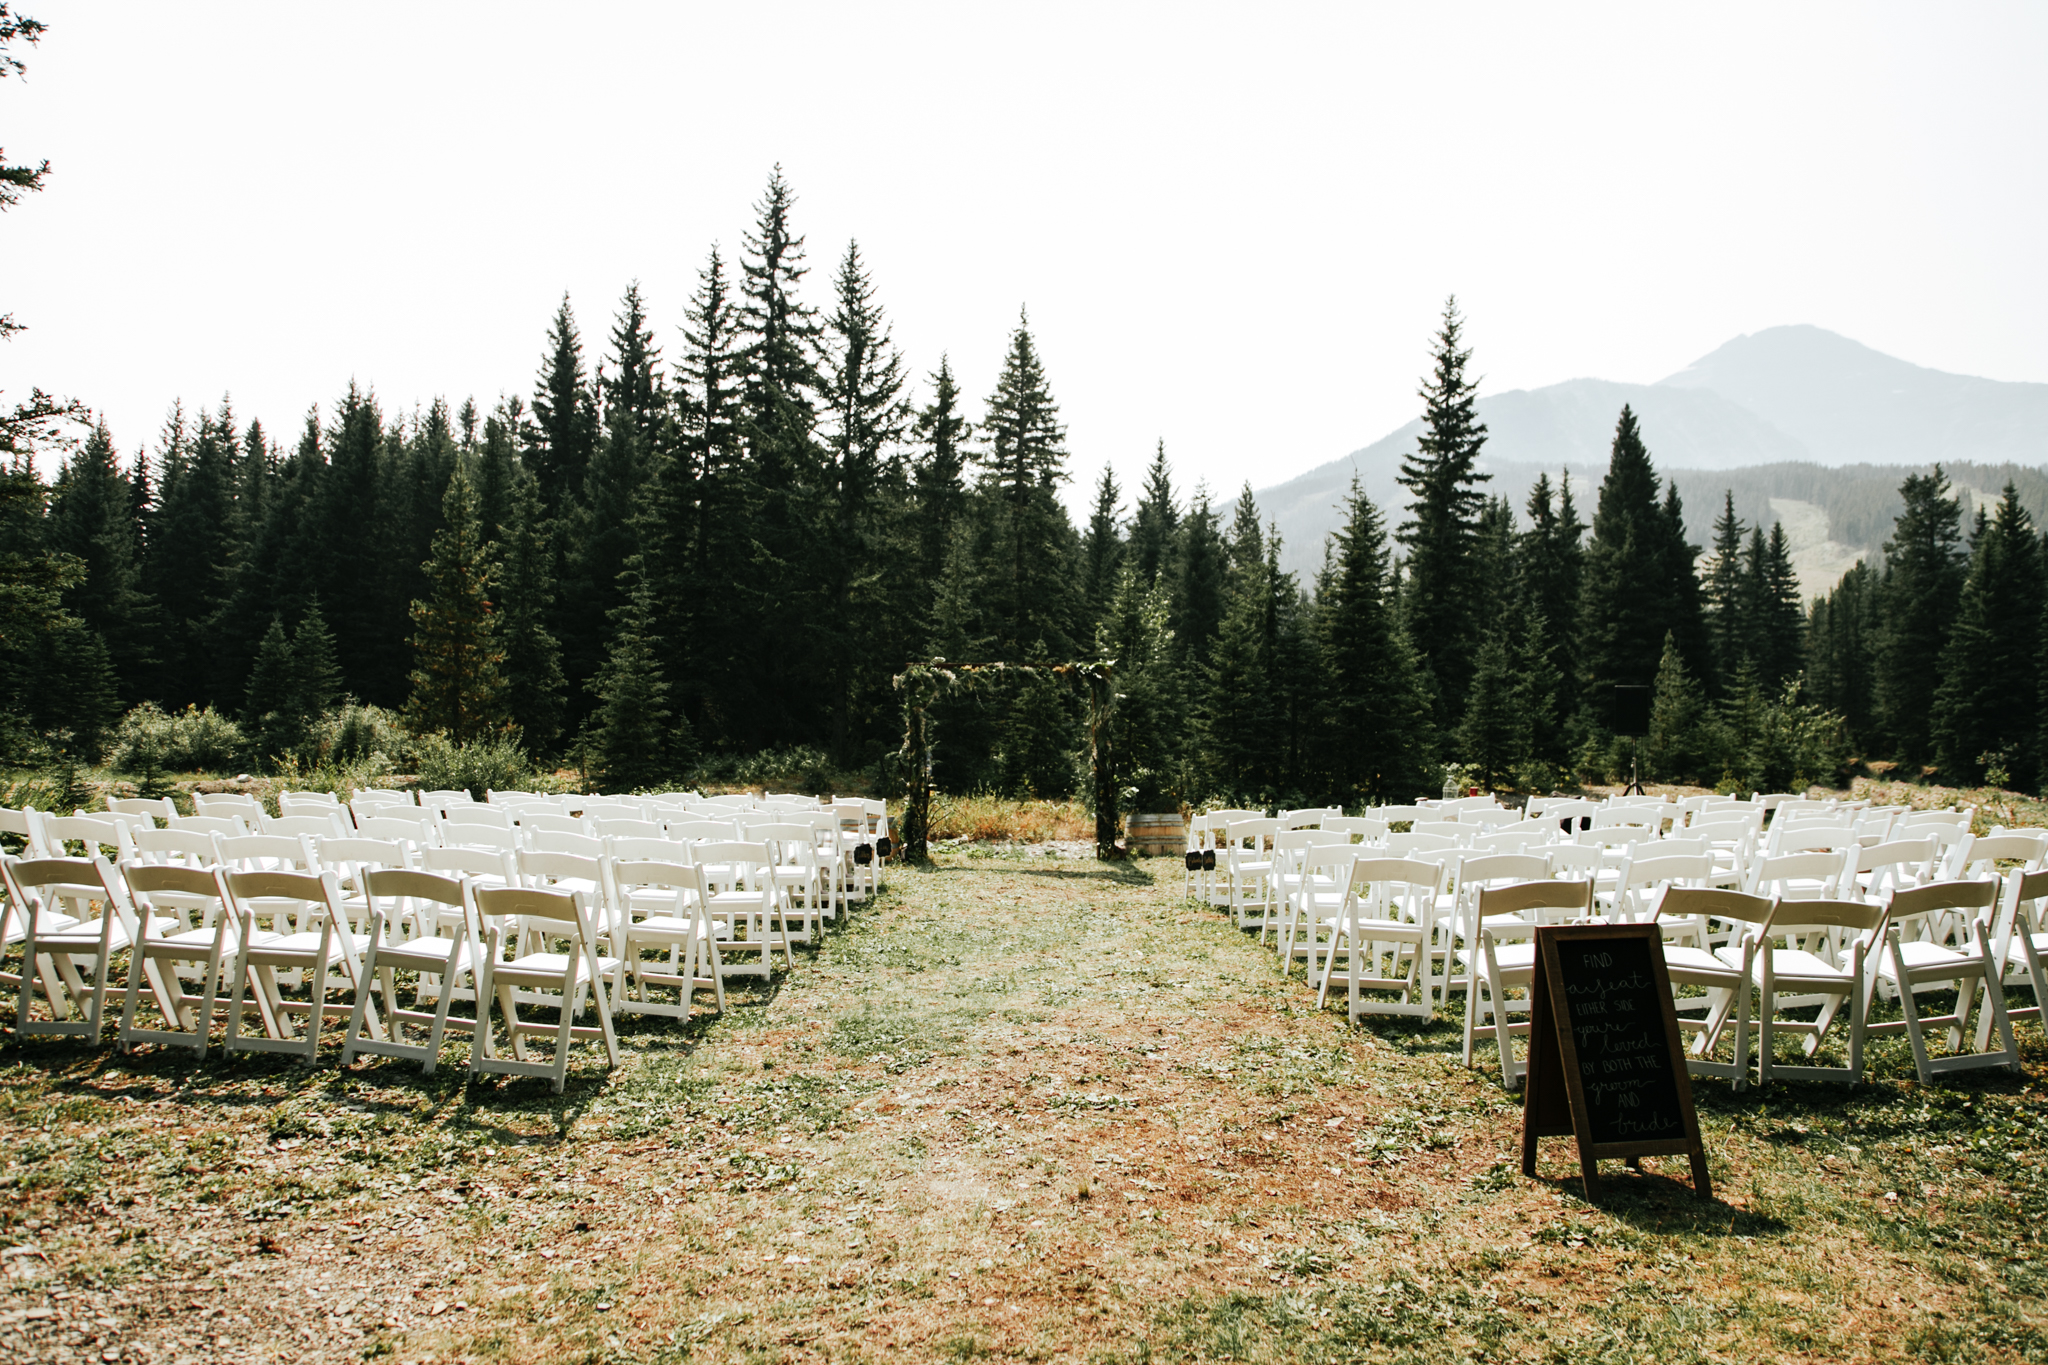 castle-mountain-wedding-photographer-love-and-be-loved-photography-lethbridge-pincher-creek-crowsnest-pass-yannick-rylee-photo-image-picture-54.jpg